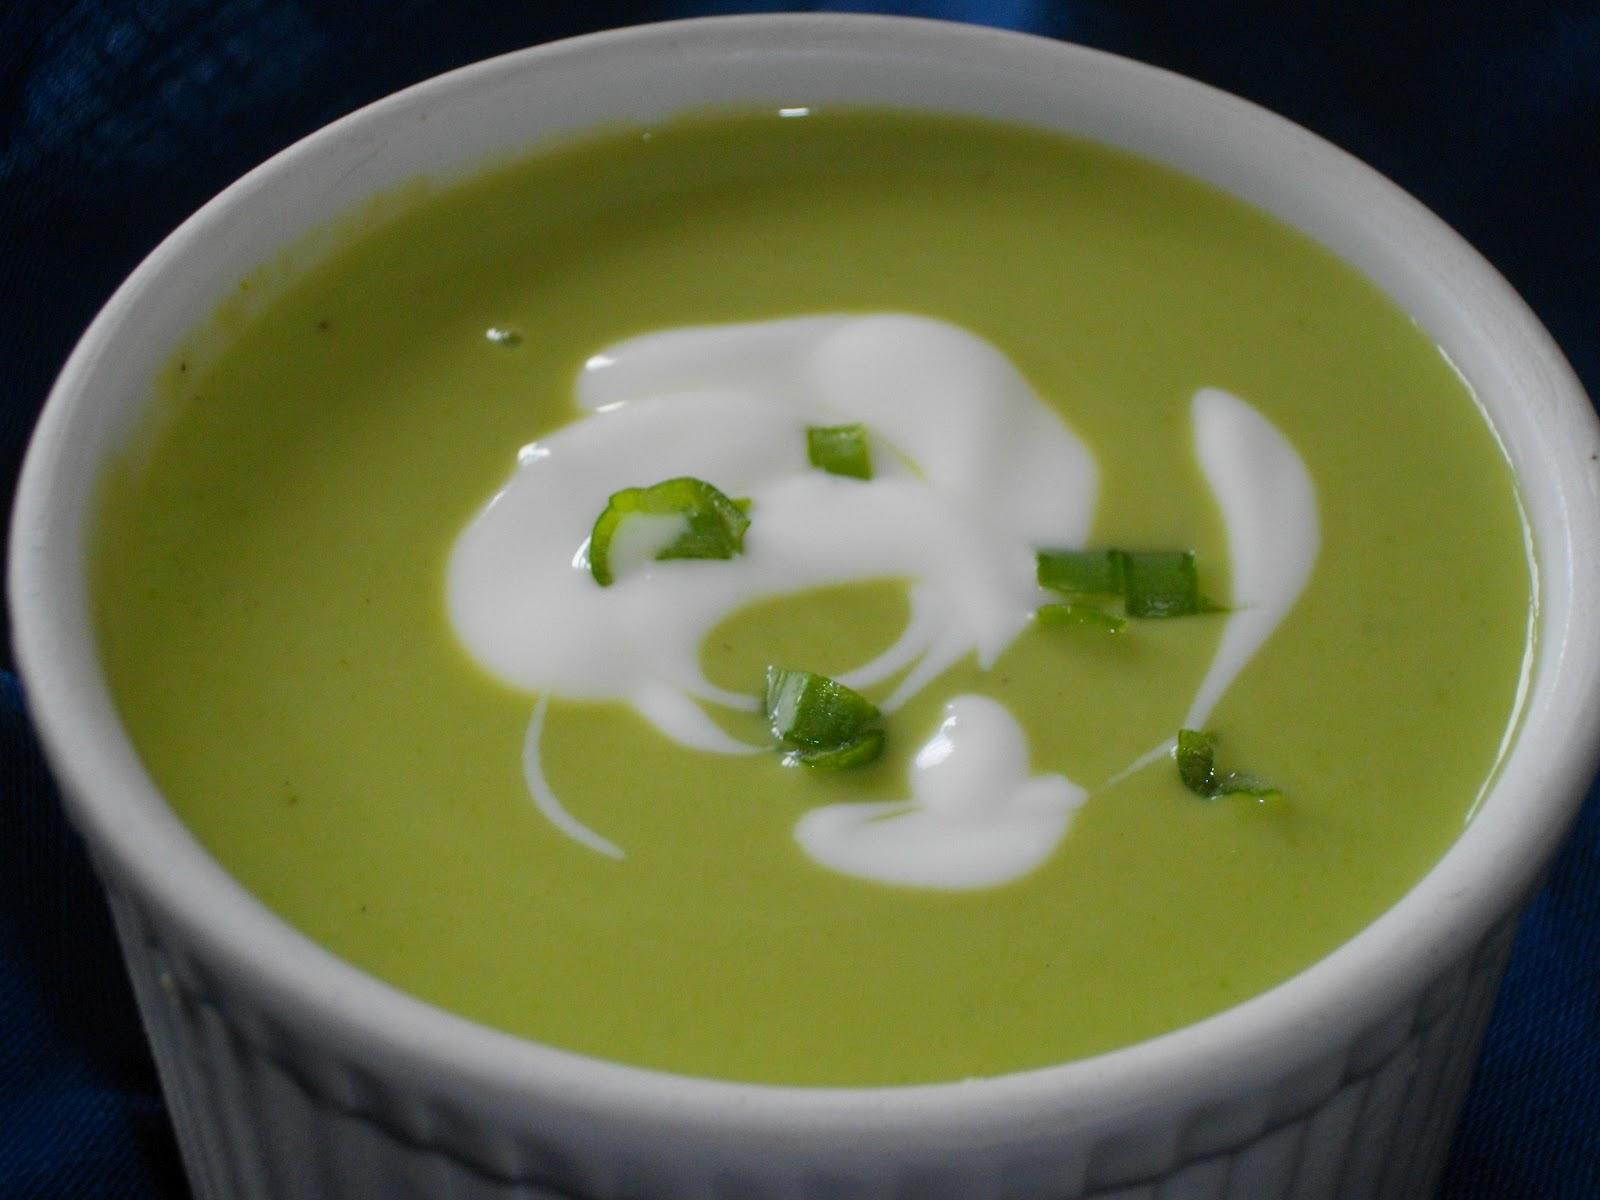 Souped-up Garden: Summer Soups: Fresh Pea ... and how to preserve ...